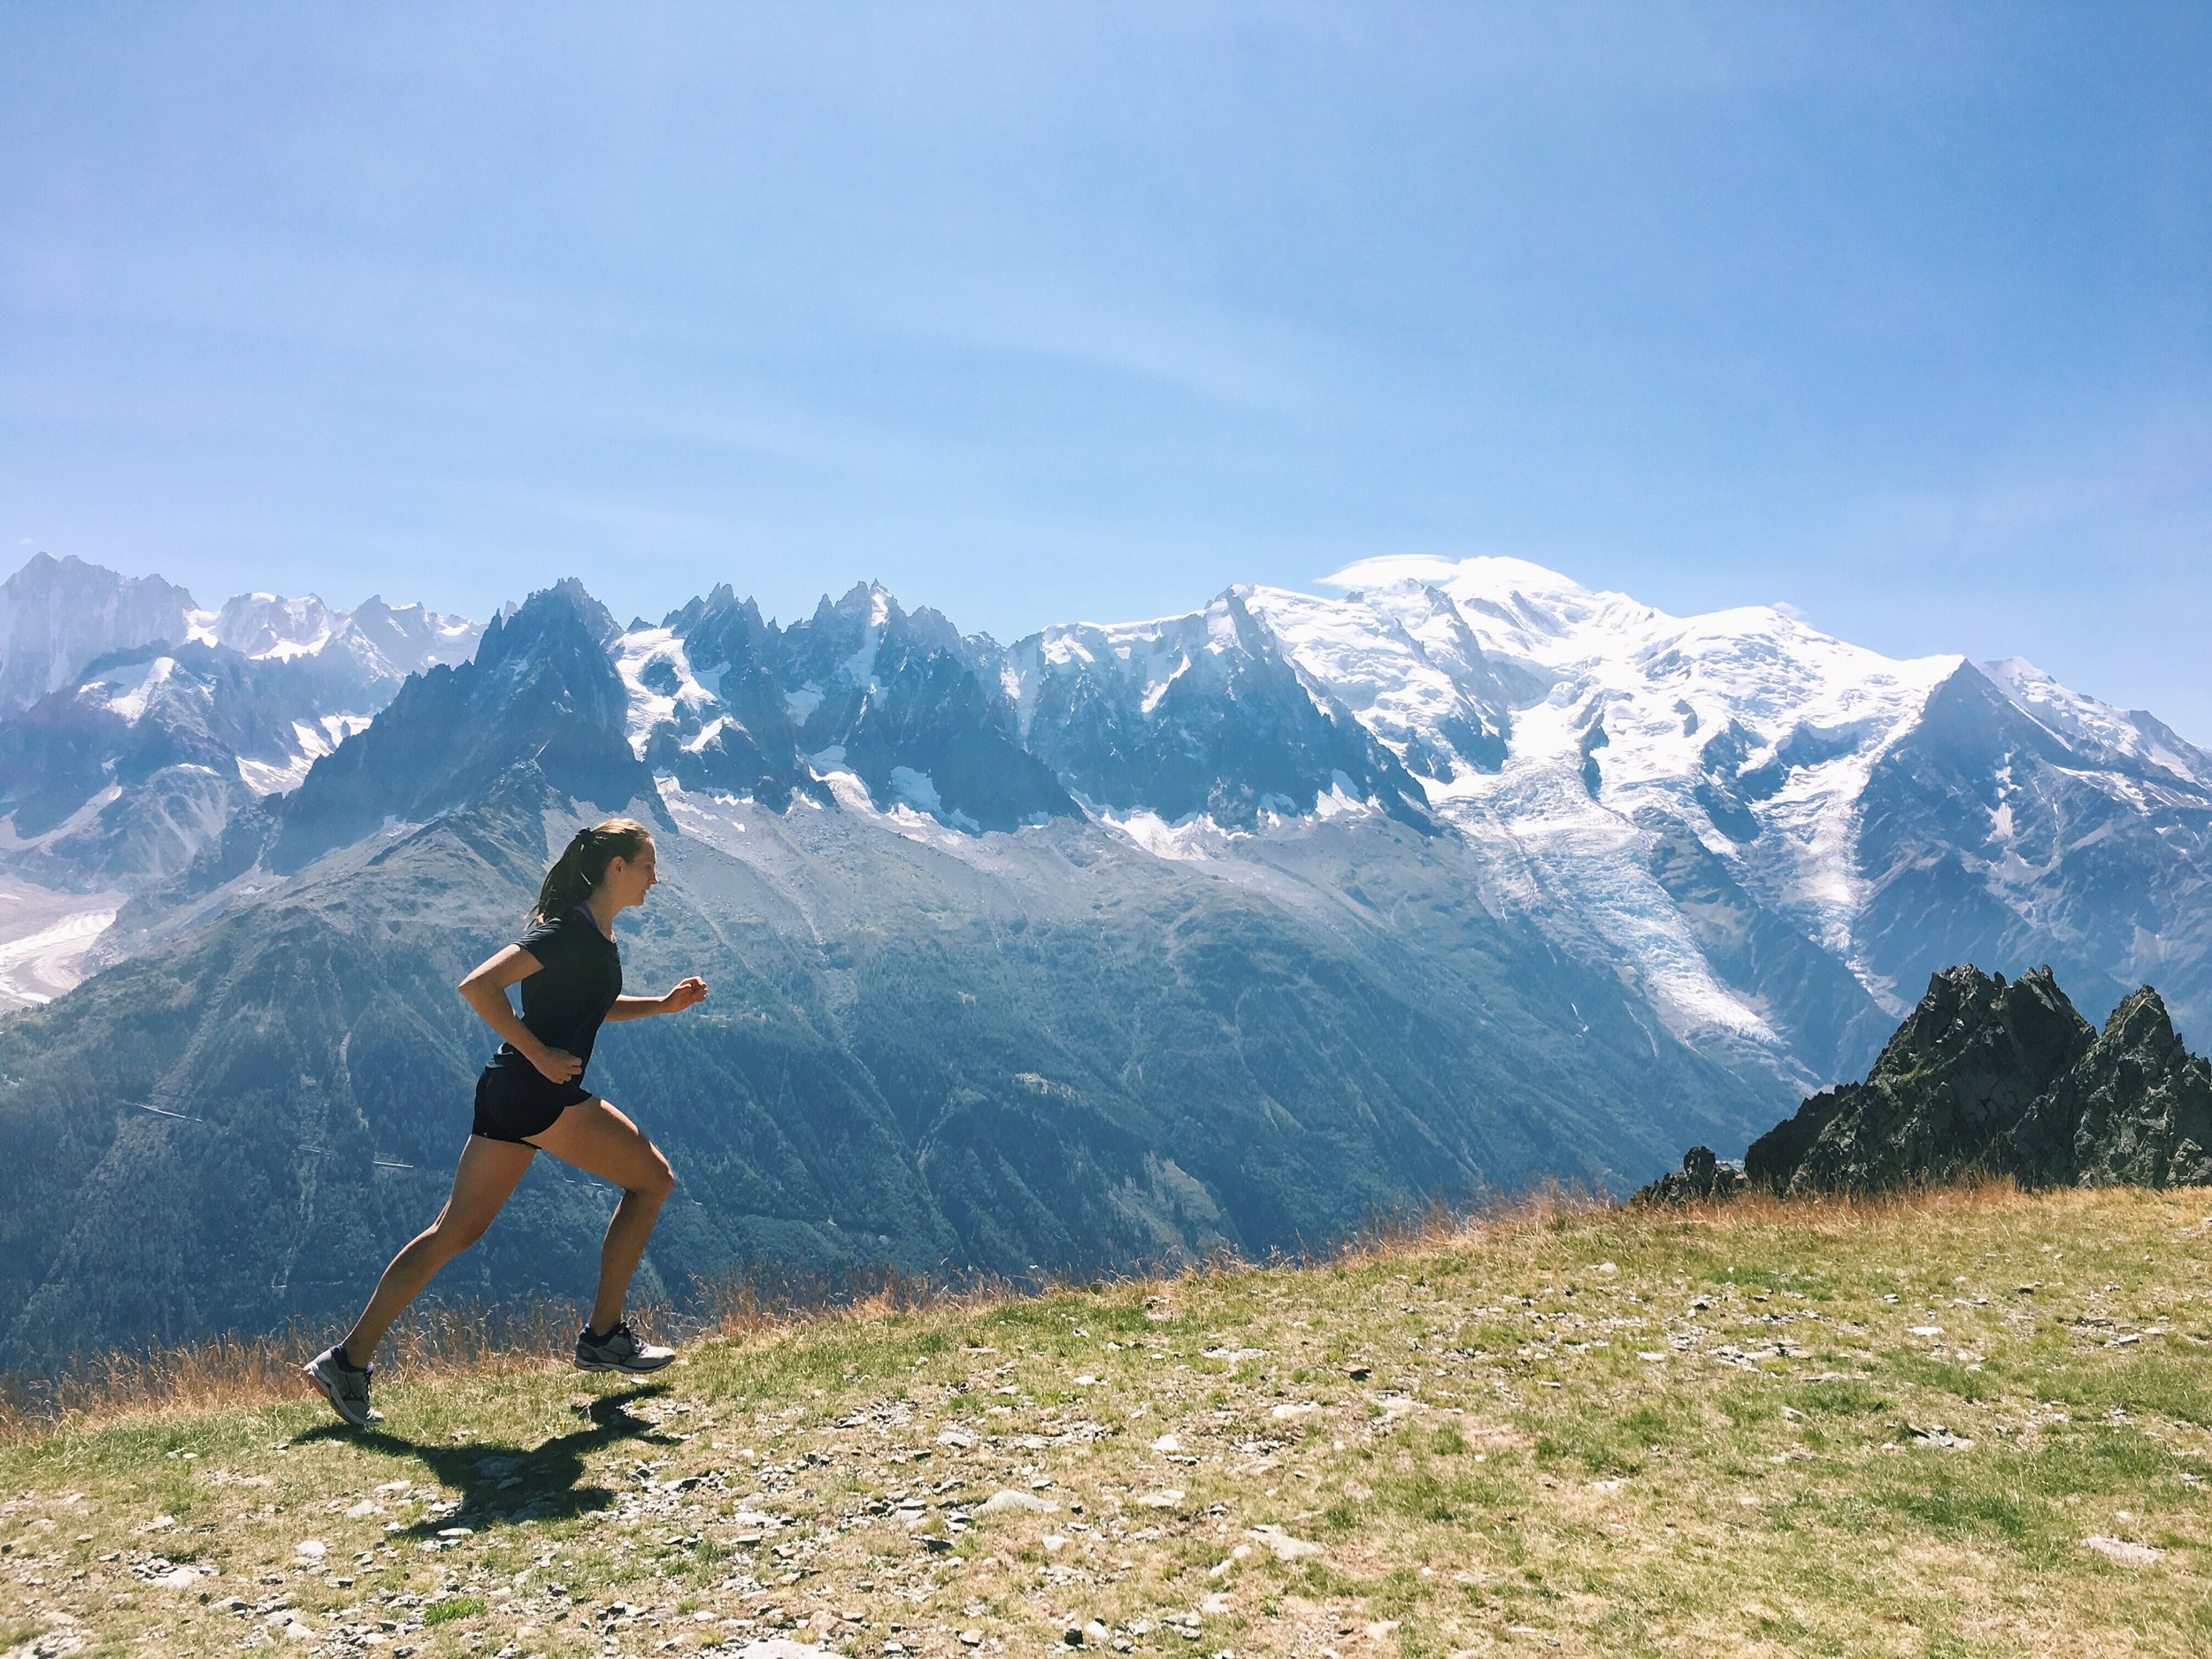 Comparison really is the thief of joy! I share how running taught me to stop the comparison trap and find freedom in so many areas of my life. foody first #wellness #wellnesscoach #holistichealth #france #travel #mountains #running #healthy #health #run